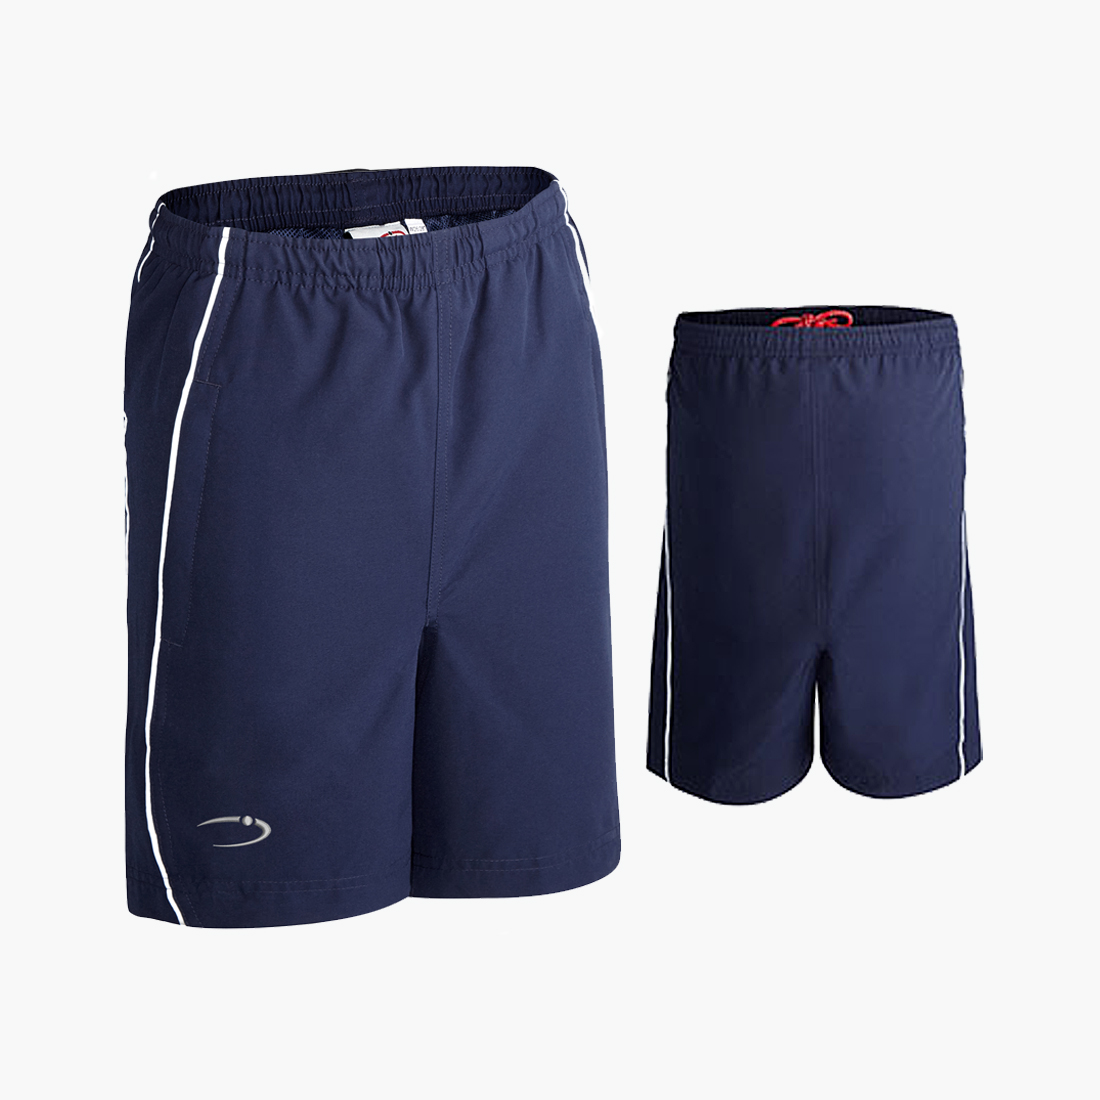 PERFORMATEX MENS' TRAINING SHORTS